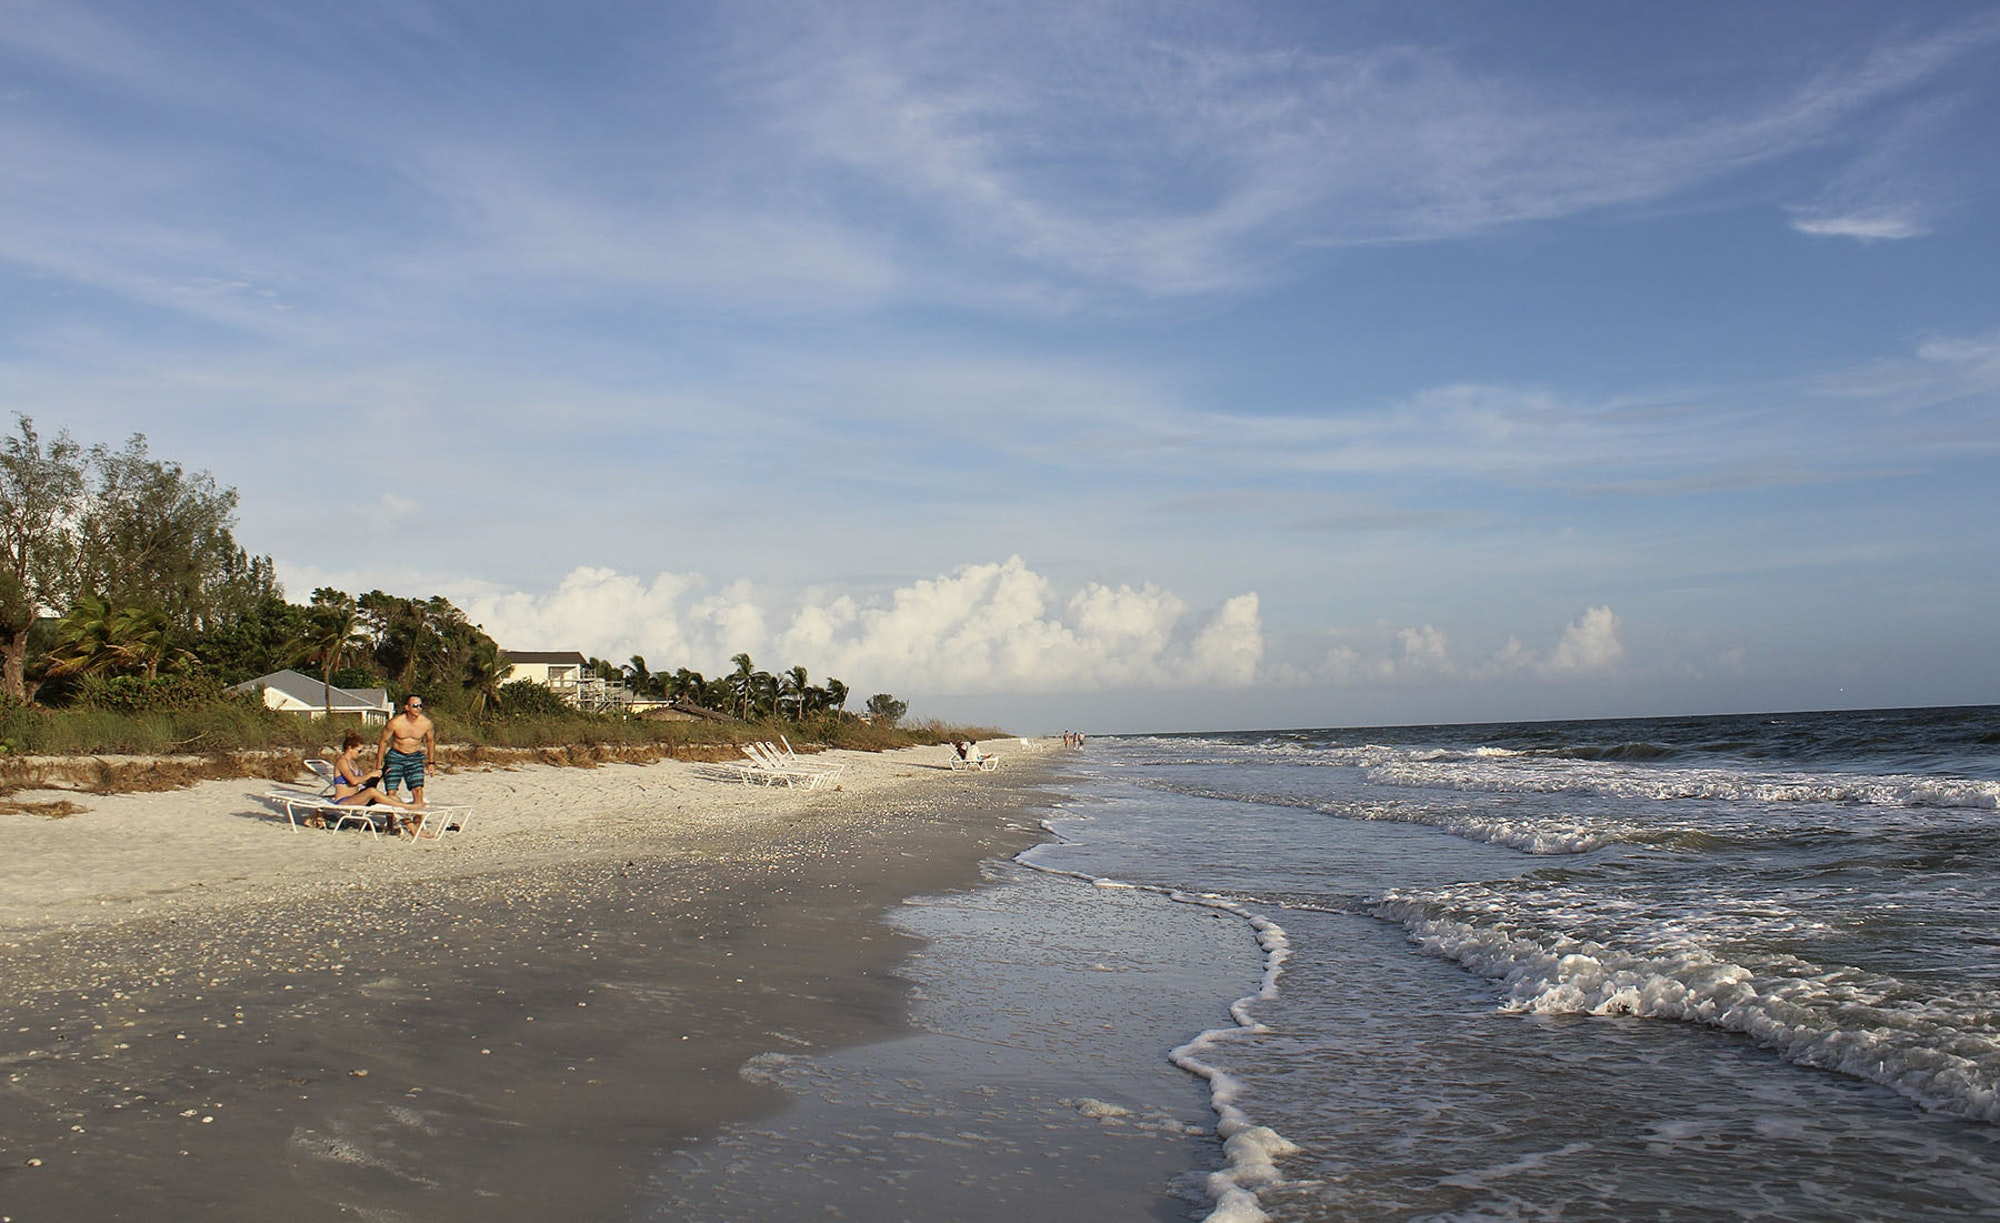 Bottle Museum The Gulf Coast Beaches, Months after hurricane hit Florida, this winter getaway for ...